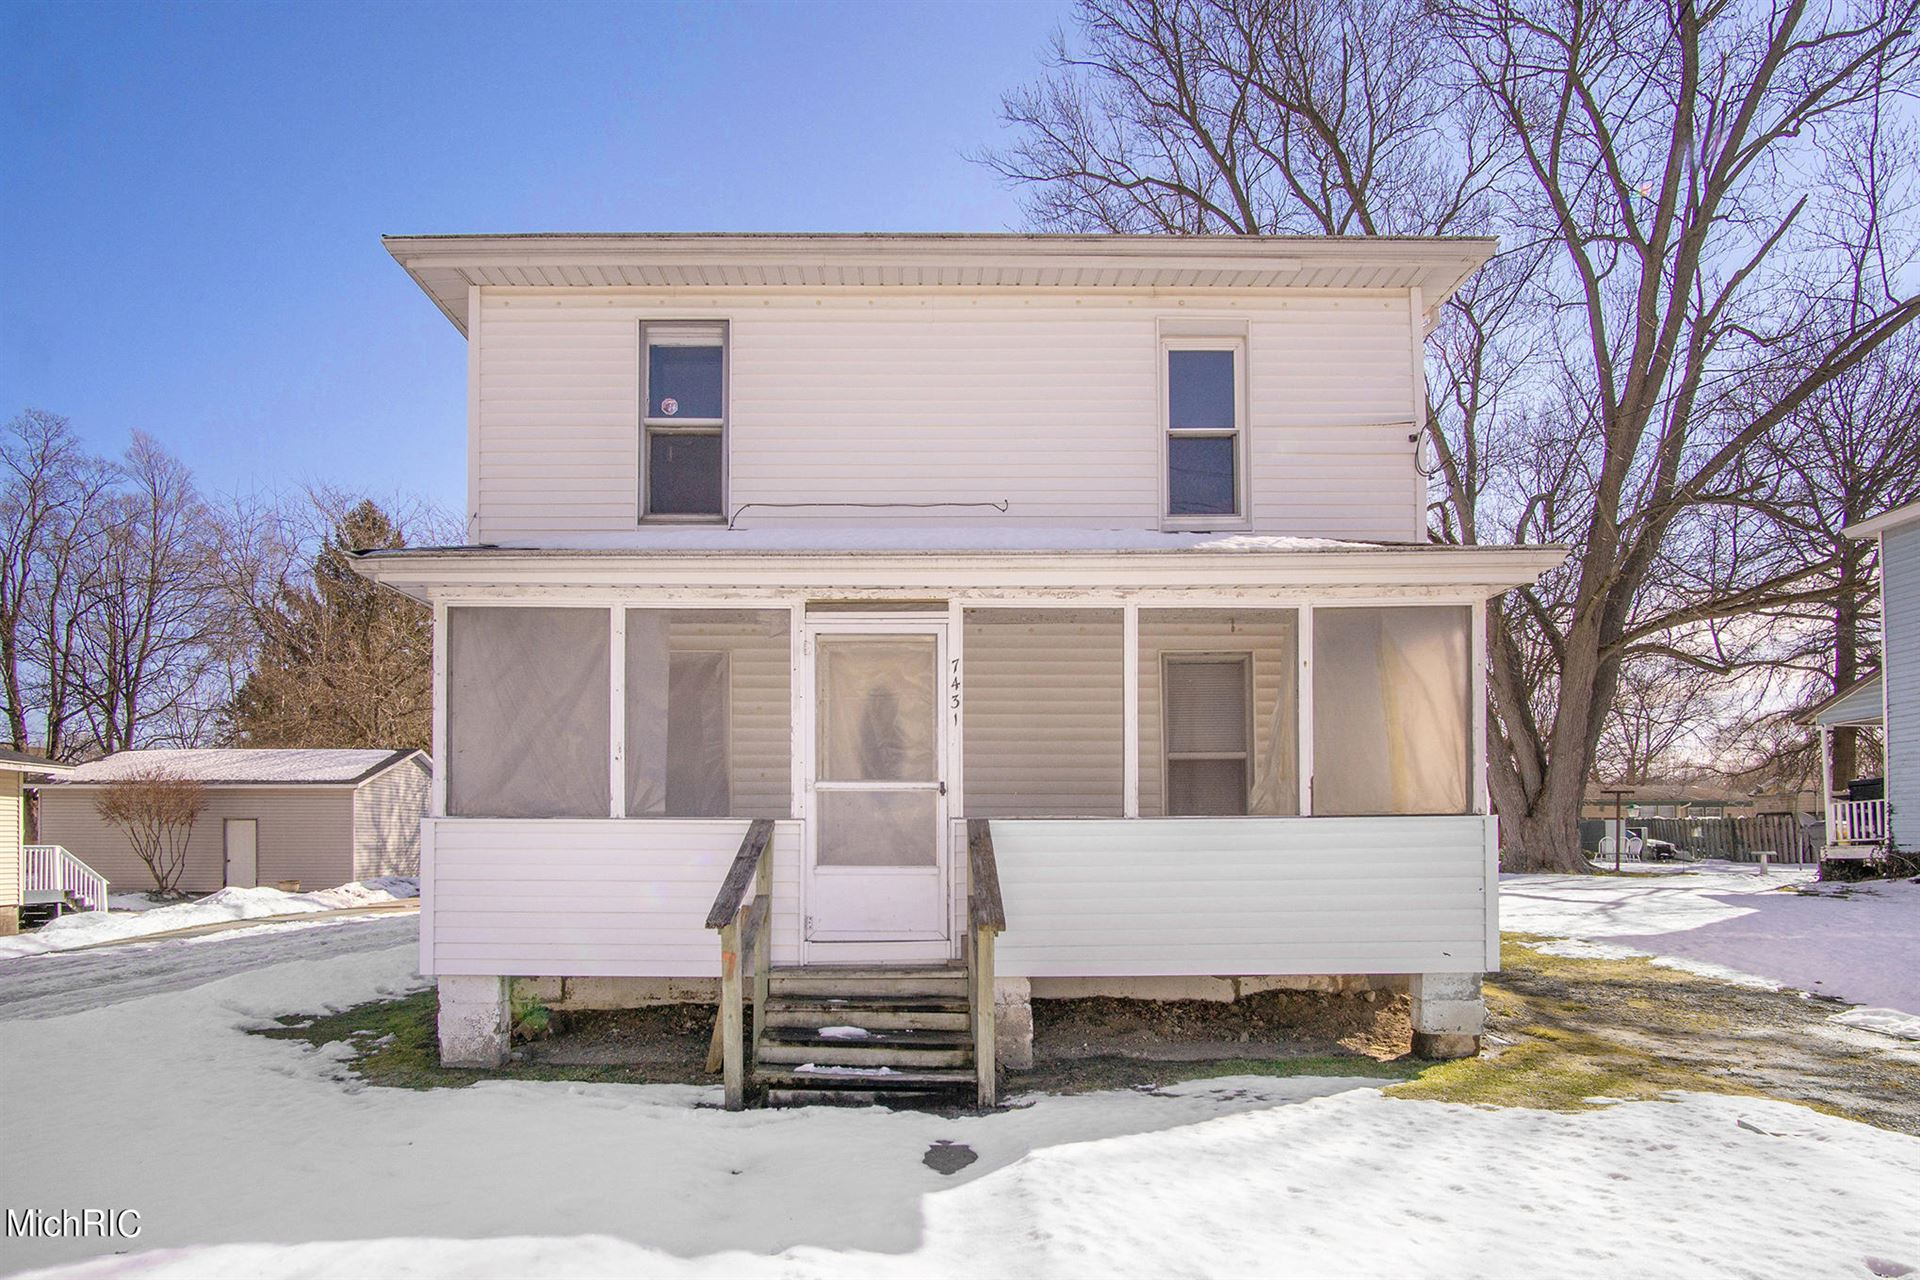 7431 S Maple Street, Eau Claire, MI 49111 - MLS#: 21006025